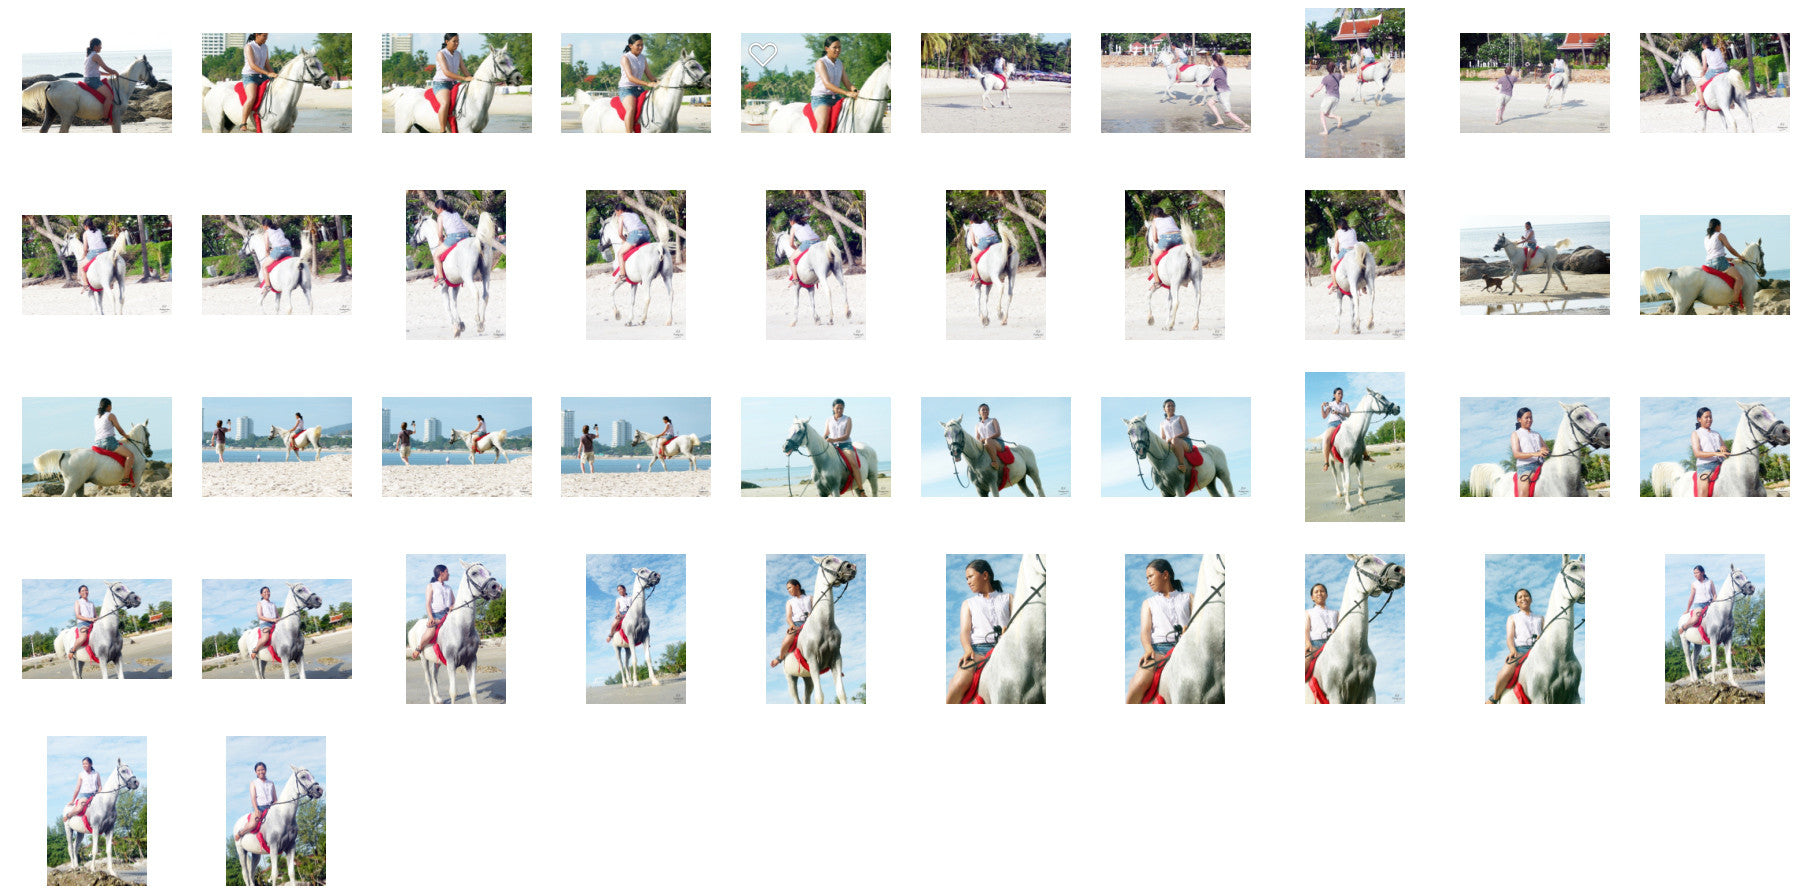 Nam in Hotpants Riding with Bareback Pad on White Arabian Horse, Part 4 - Riding.Vision